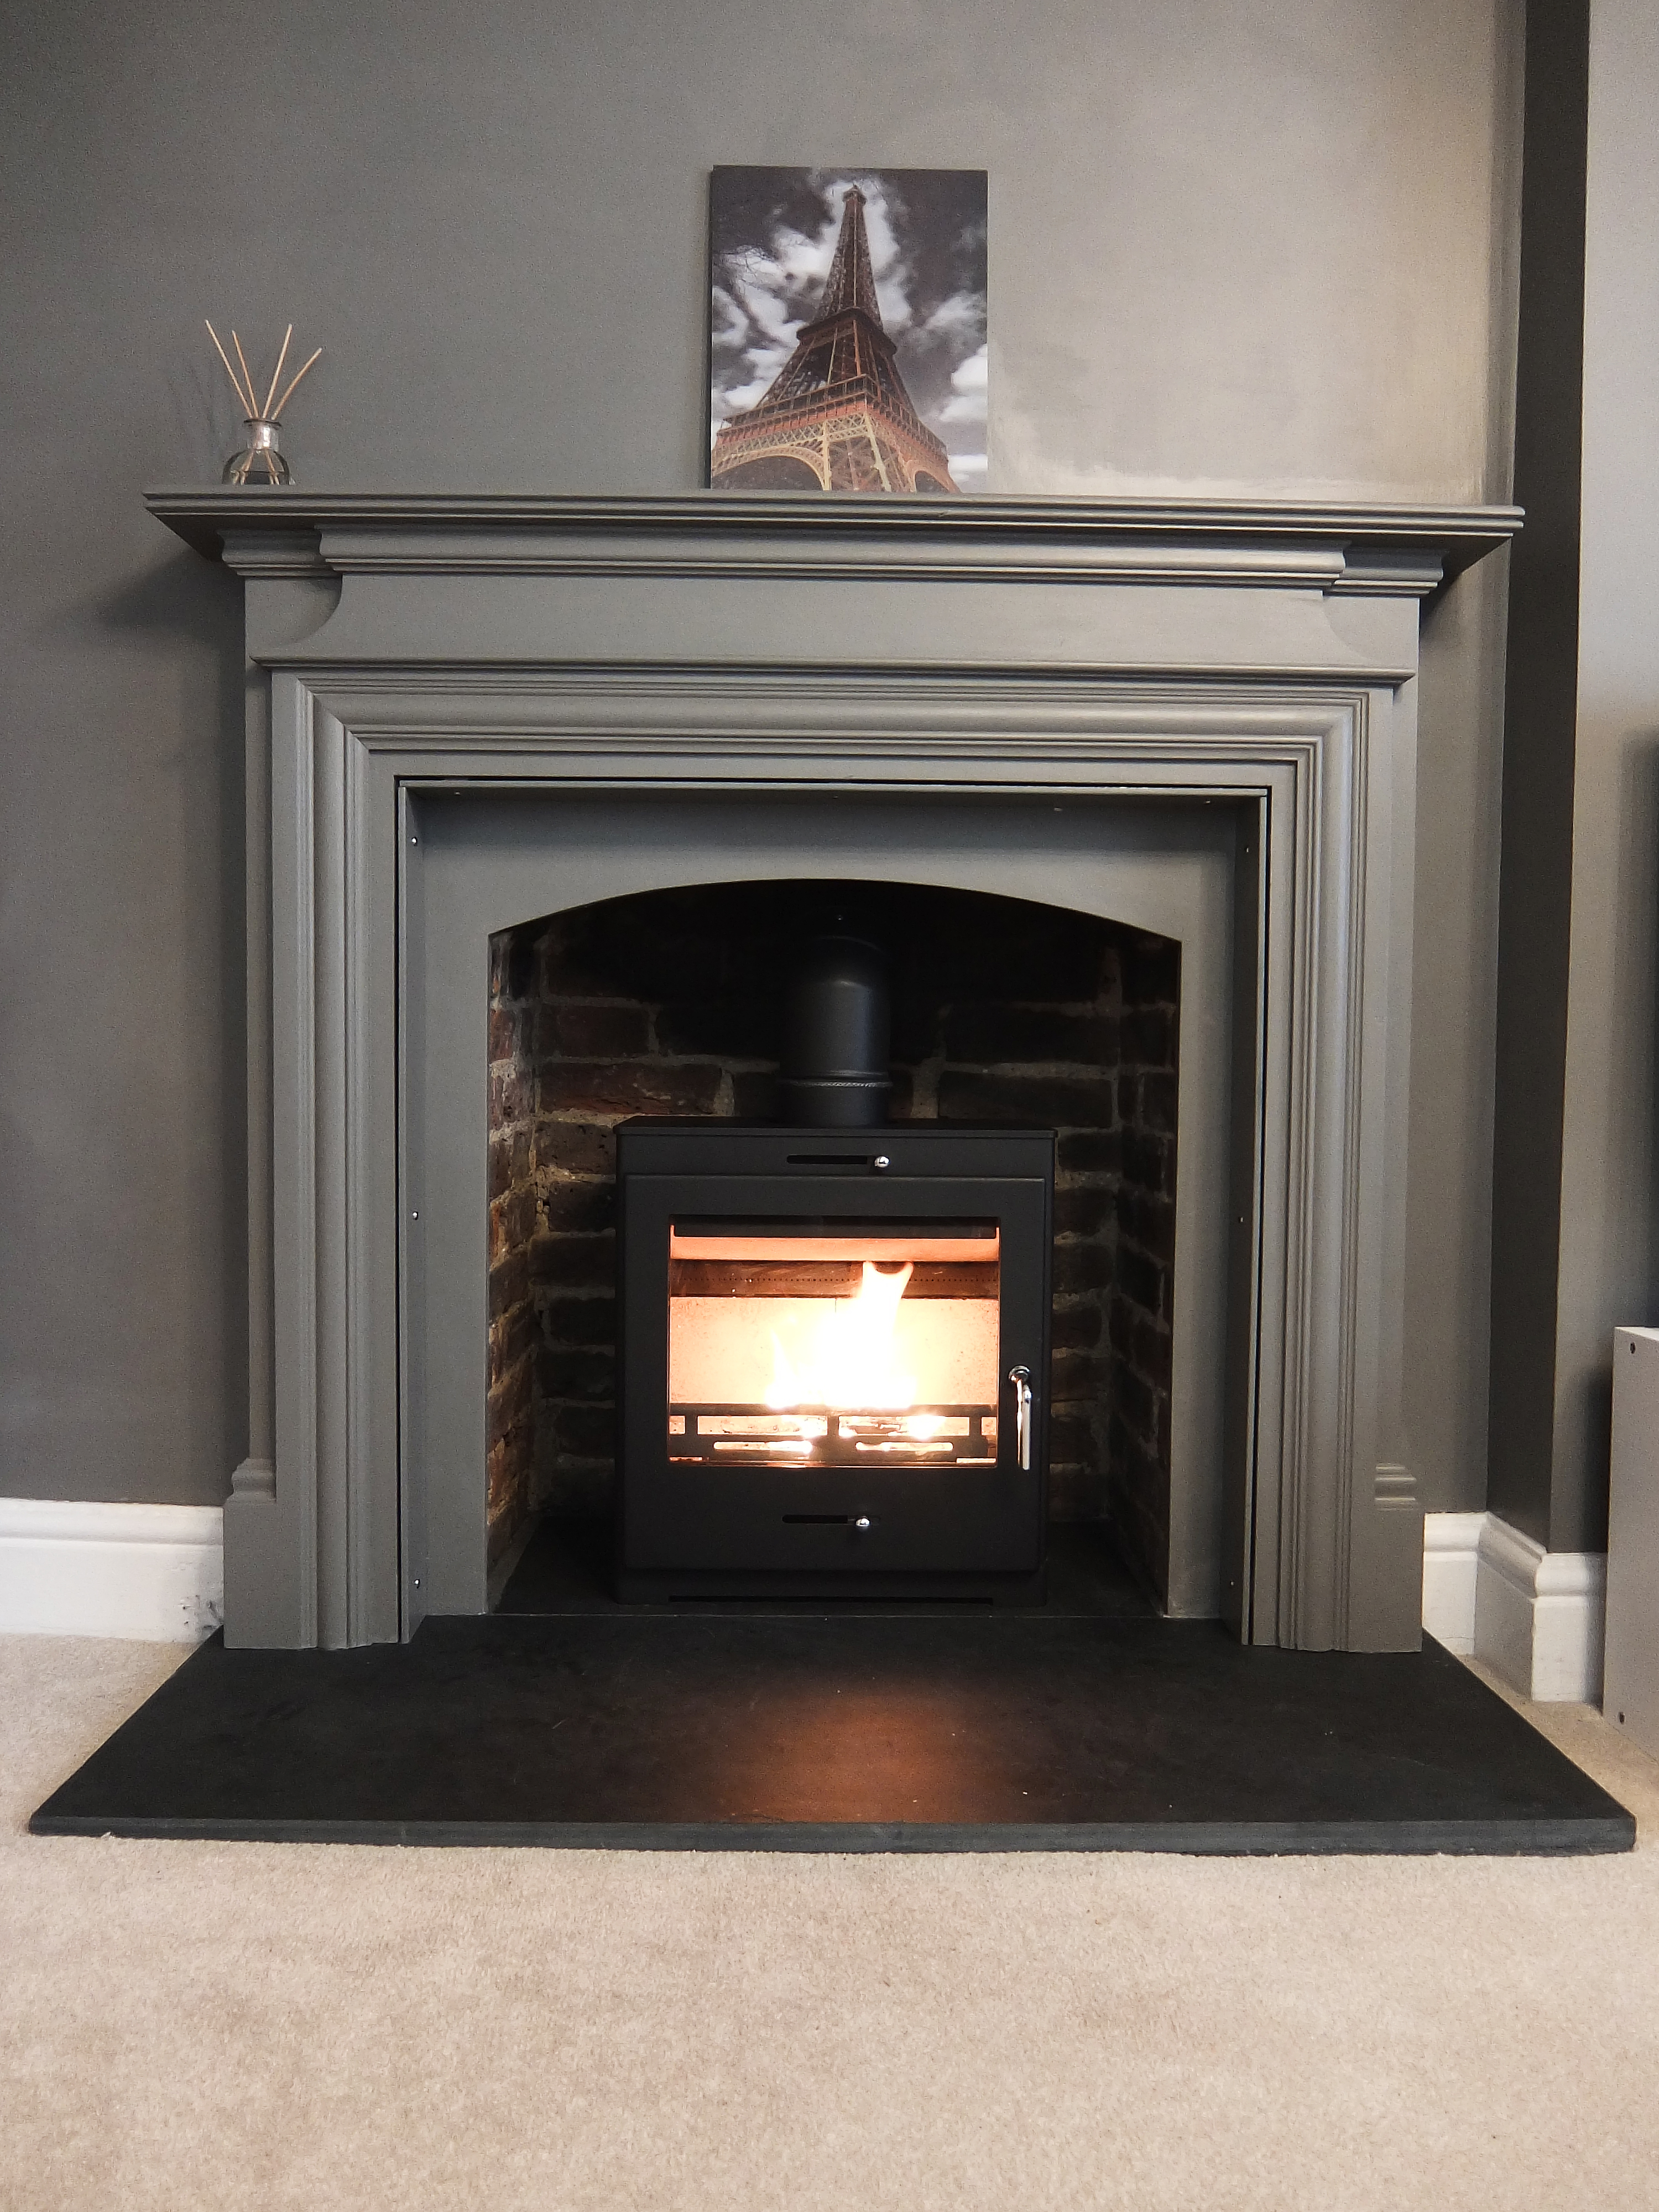 HETAS Wood Burner Installation Guildford Surrey  Fire Bug Wood Burning Installation